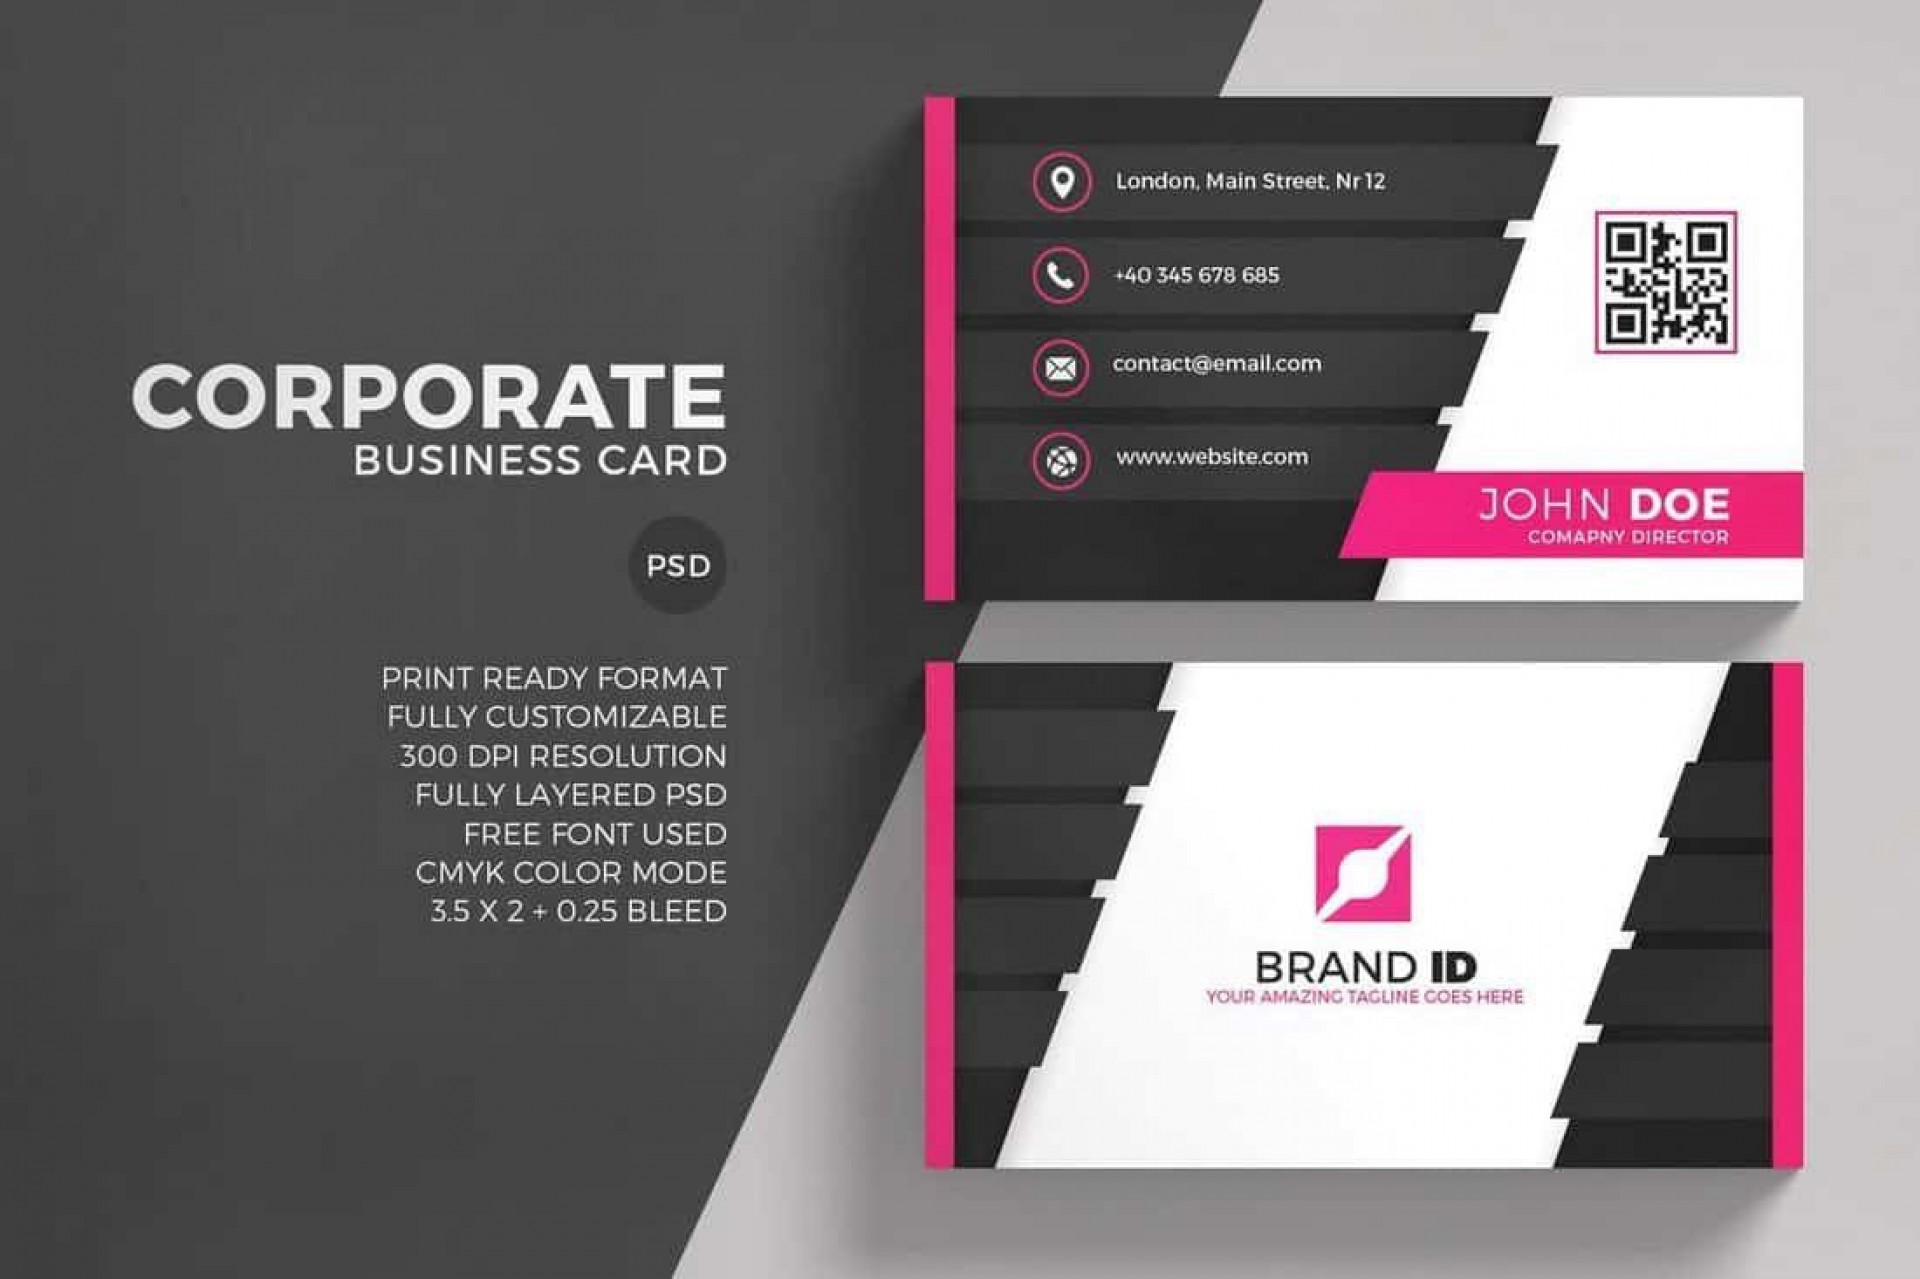 003 Archaicawful Free Simple Busines Card Template Word High Resolution 1920